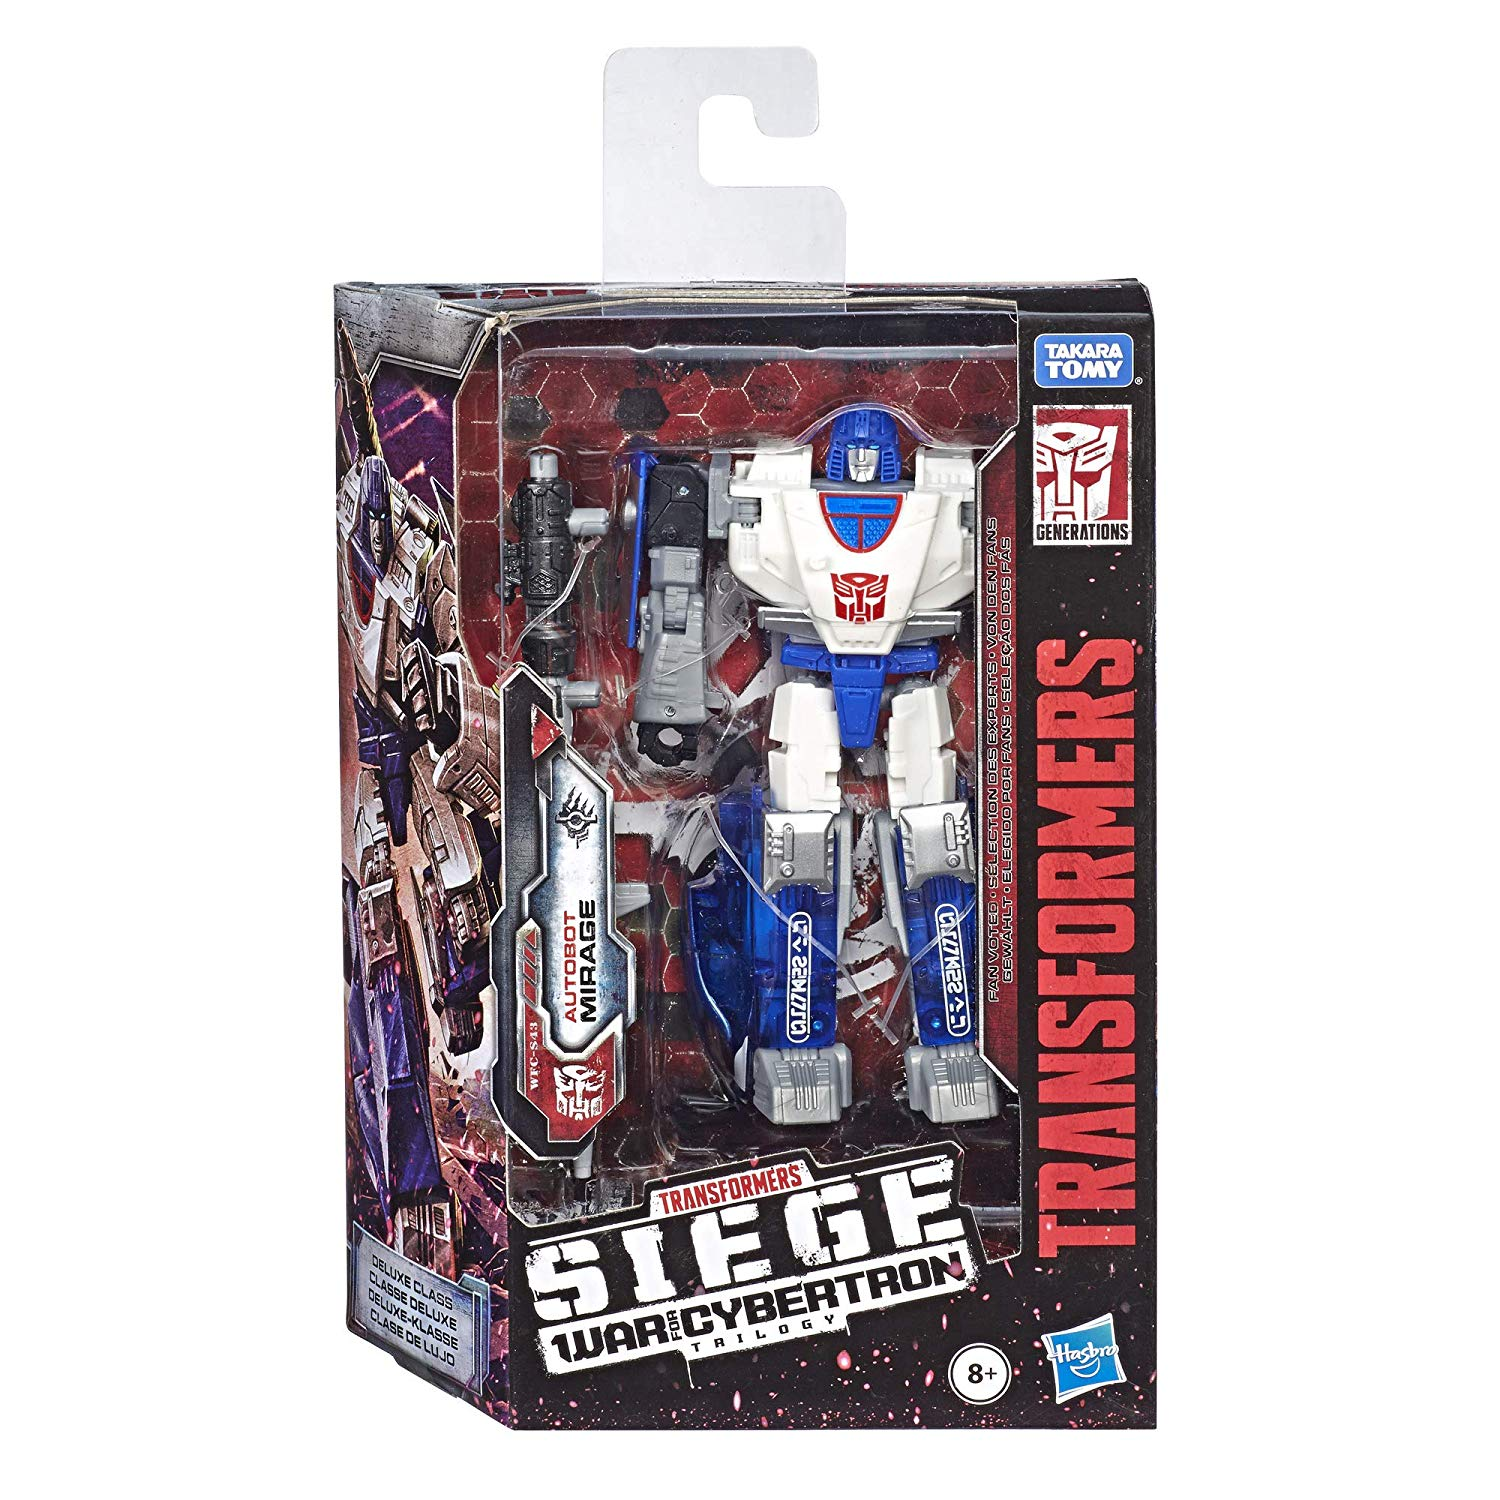 Transformers - War for Cybertron: SIEGE- Deluxe Class - Mirage (WFC-S43)